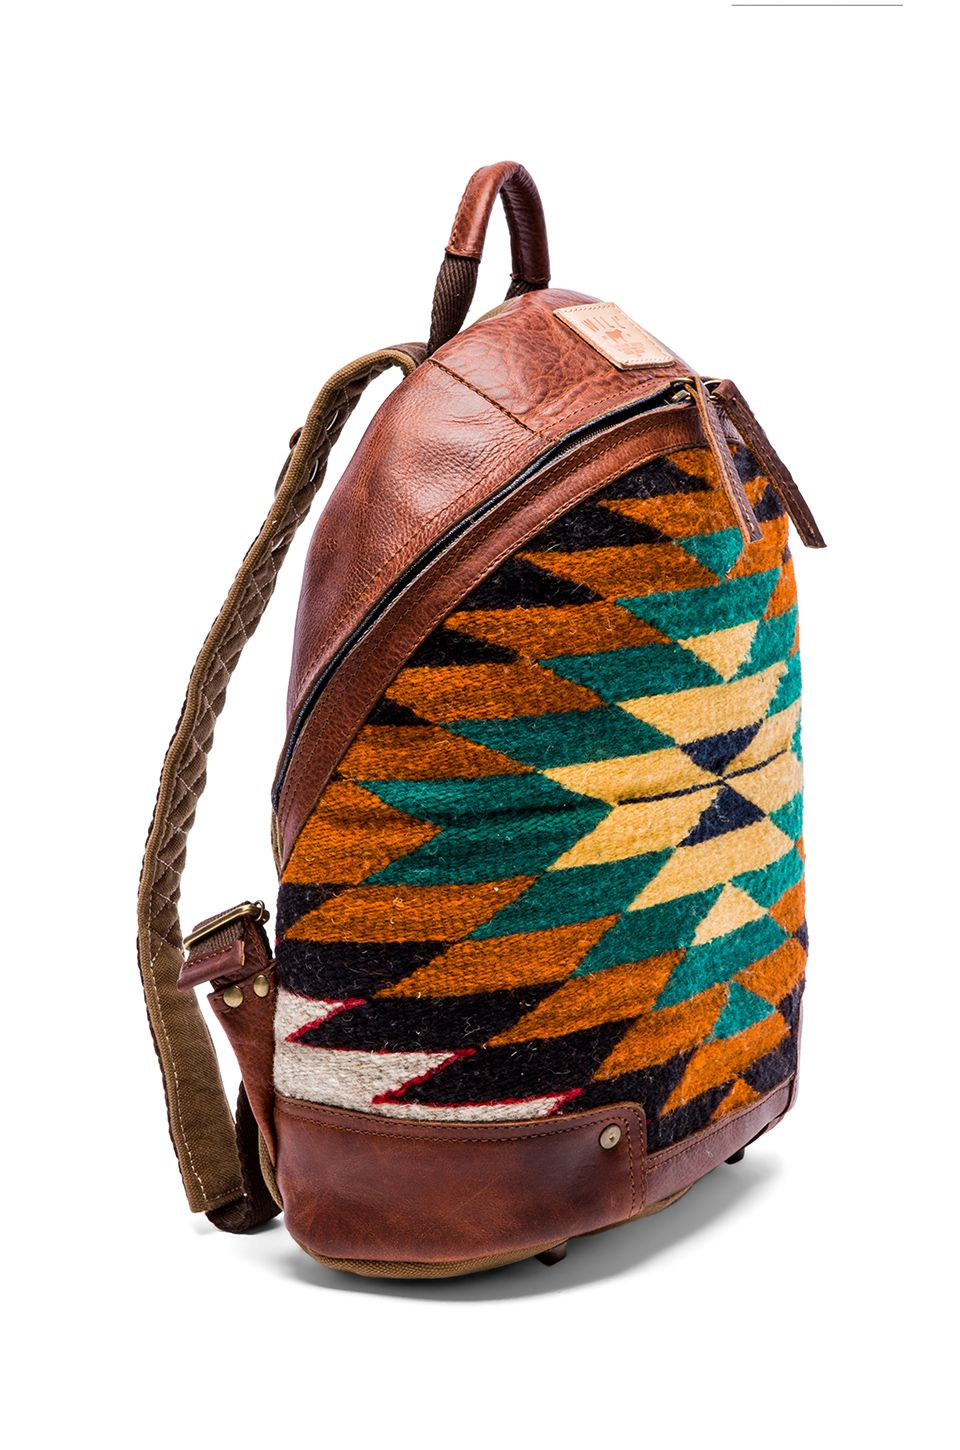 WILL Leather Goods Oaxacan Dome Backpack in Cognac  b5a4a0ff3b1f7